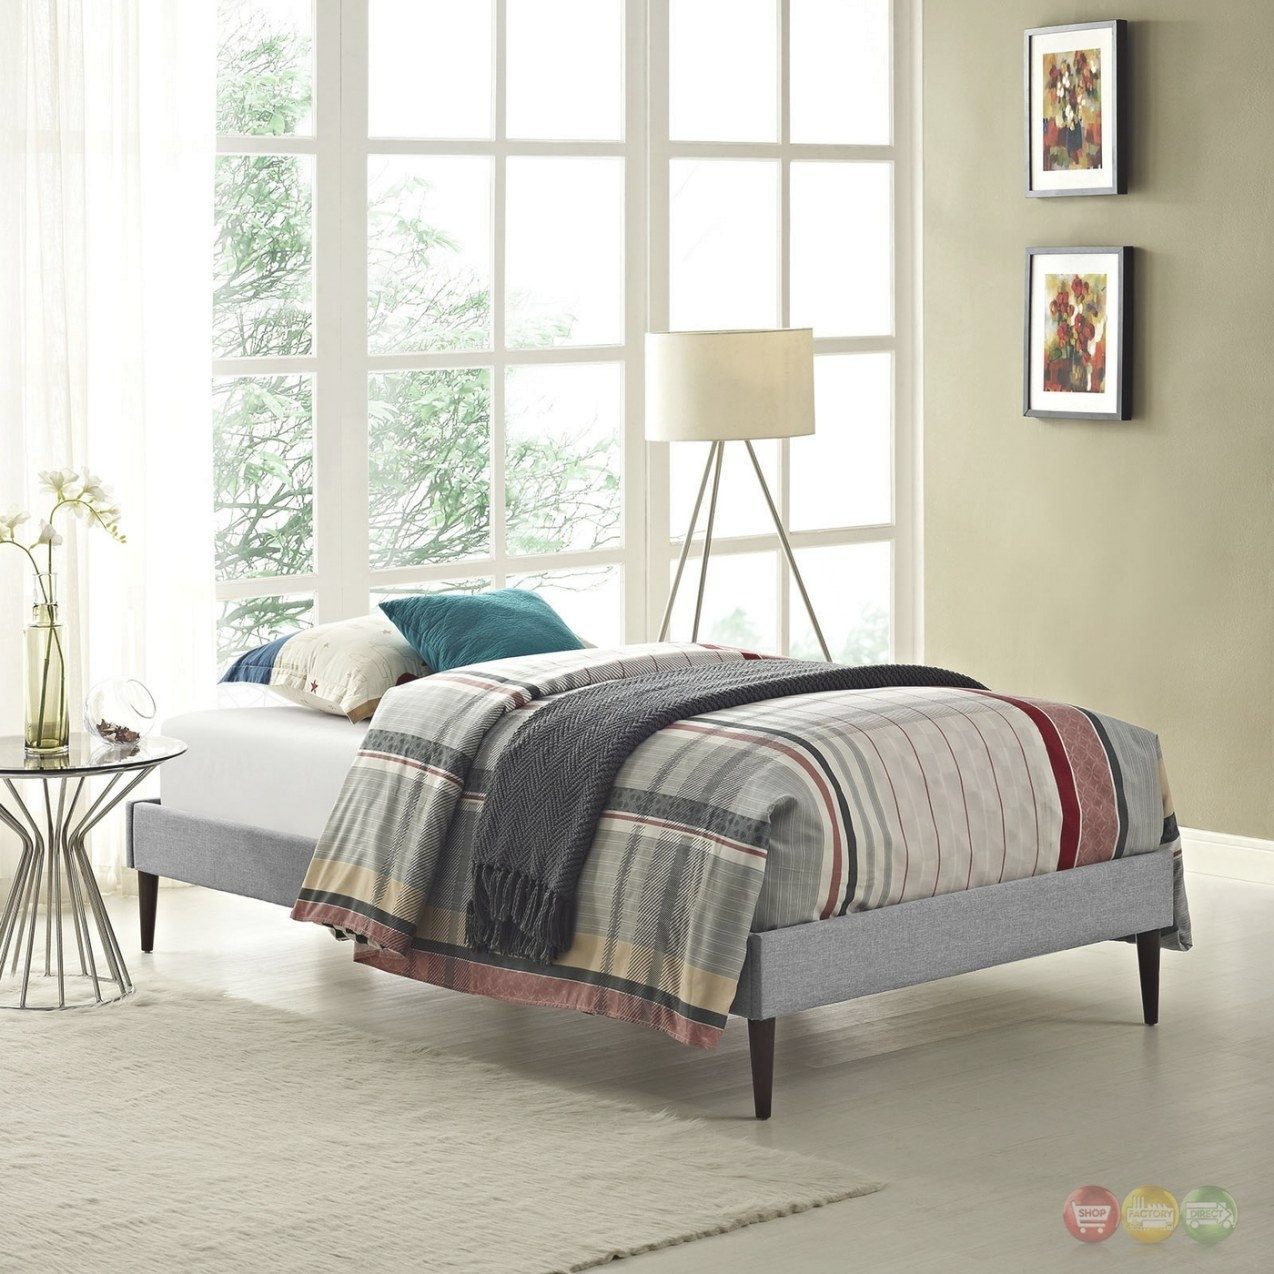 Sherry Upholstered Fabric Twin Platform Bed Frame, Light Gray throughout Twin Platform Bed Frame